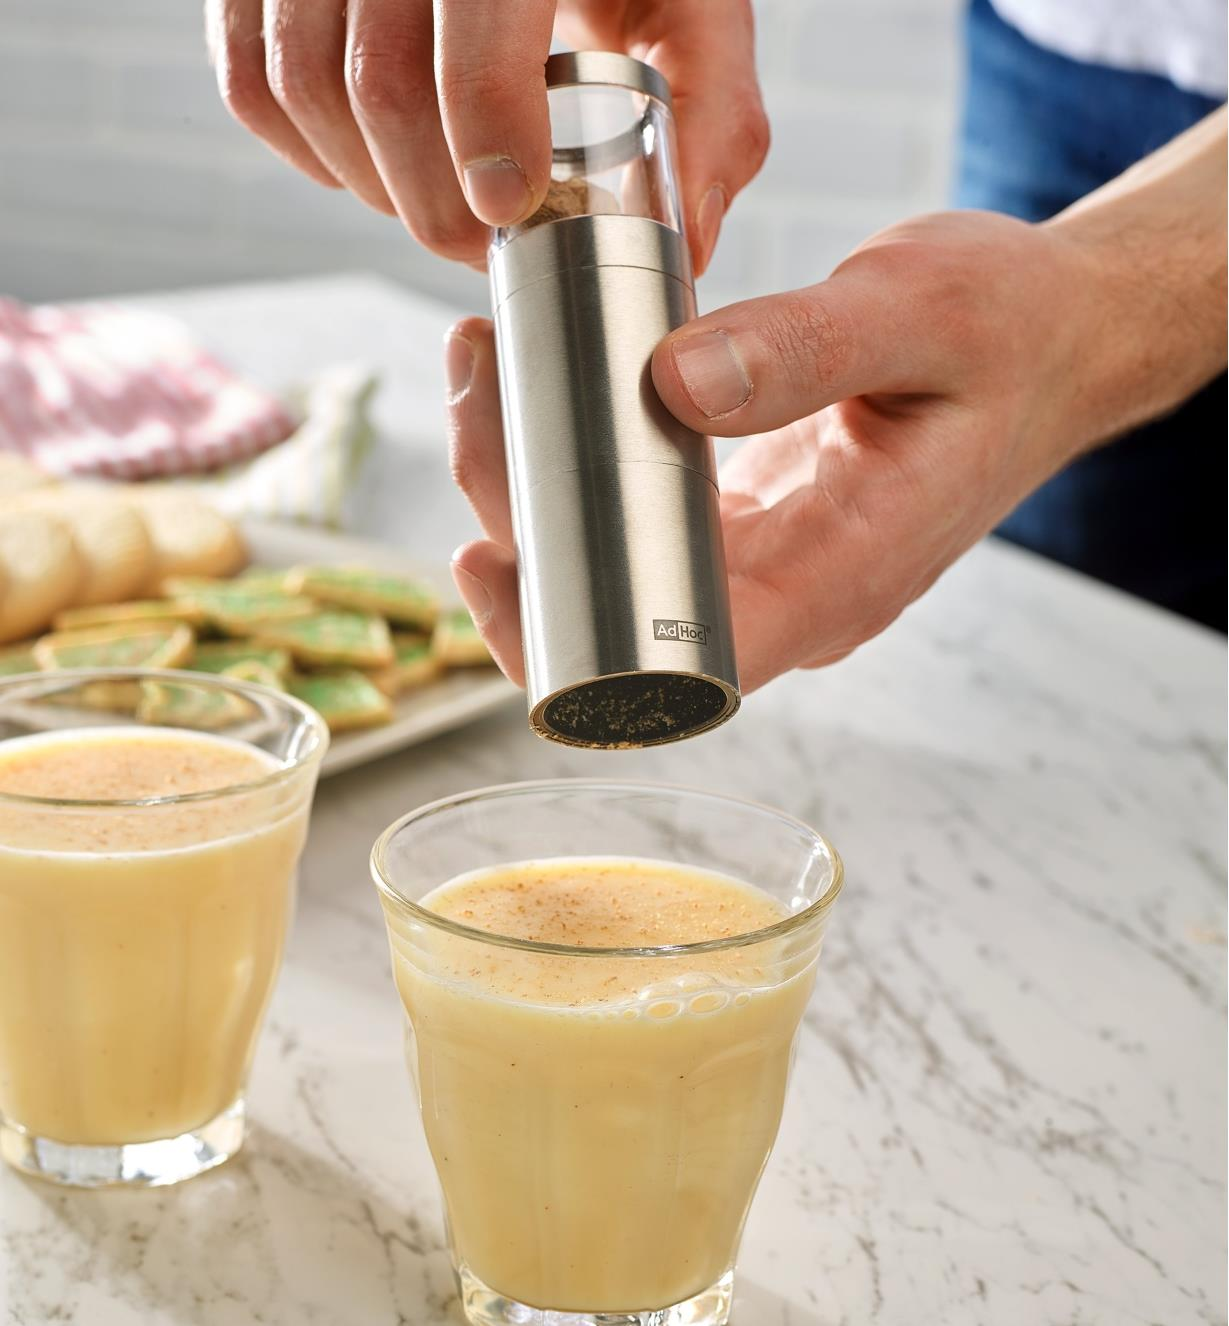 Using the Nutmeg Grinder over cups of eggnog